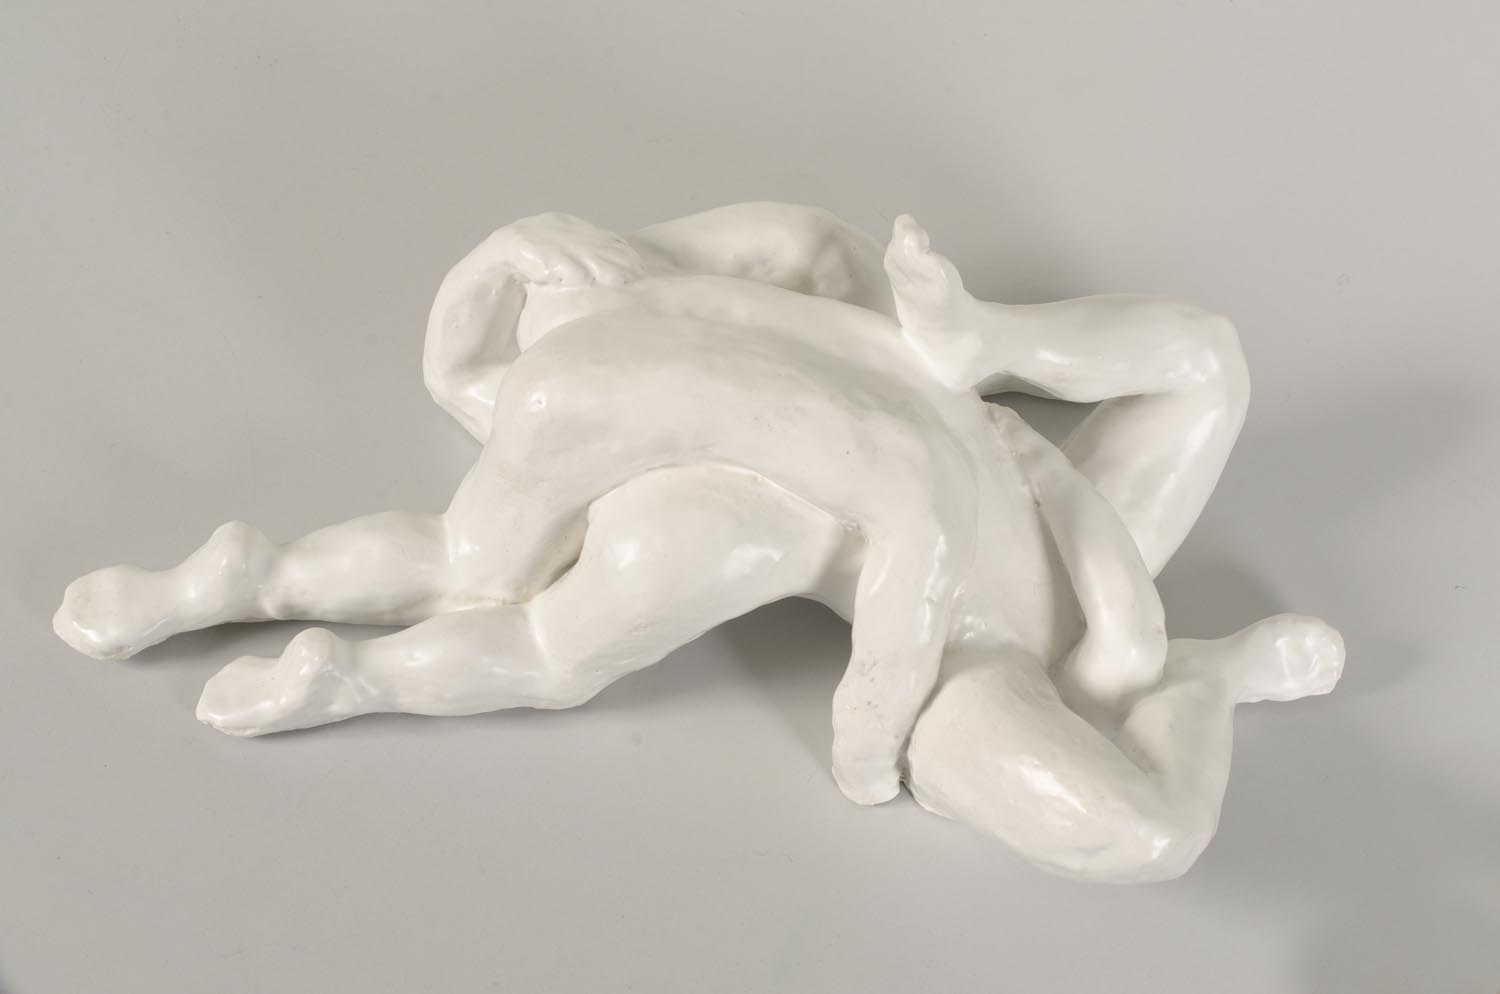 'The Whole is Greater than the Sum of its Parts' III, ceramic with glaze, 14,5 X 40 X 26 cm, 2013